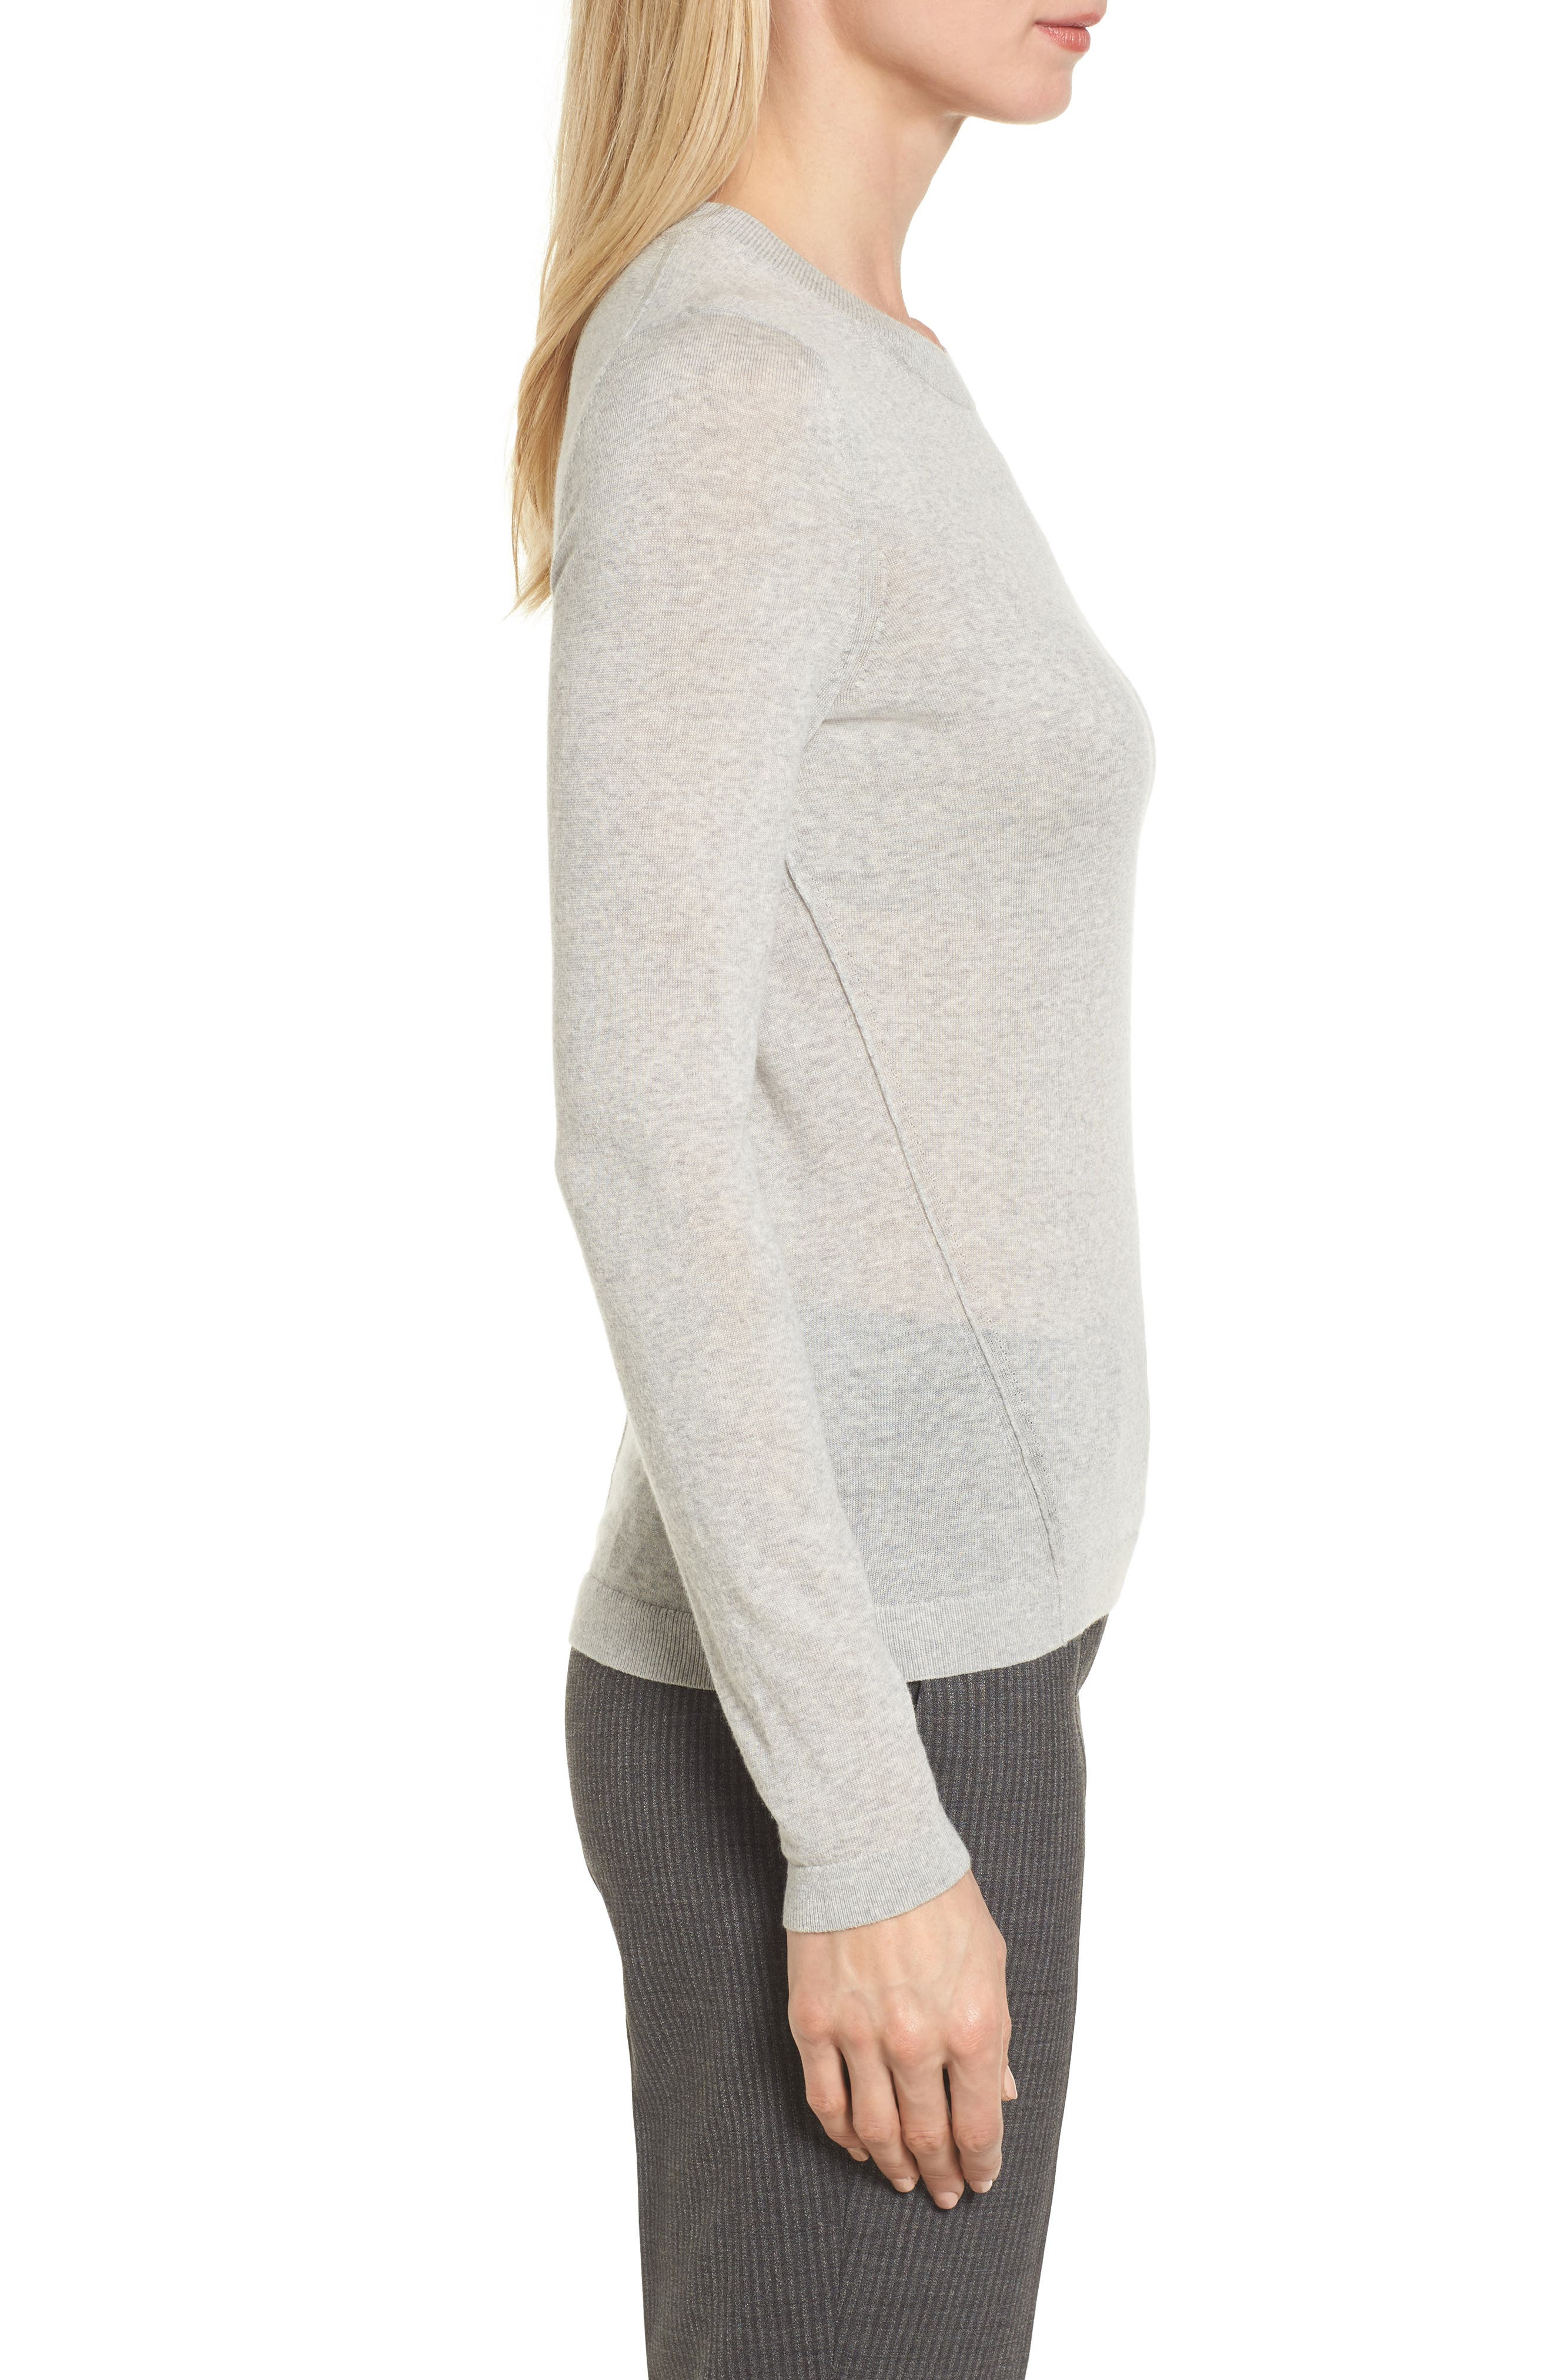 Fayme Wool Crewneck Sweater,                             Alternate thumbnail 3, color,                             057